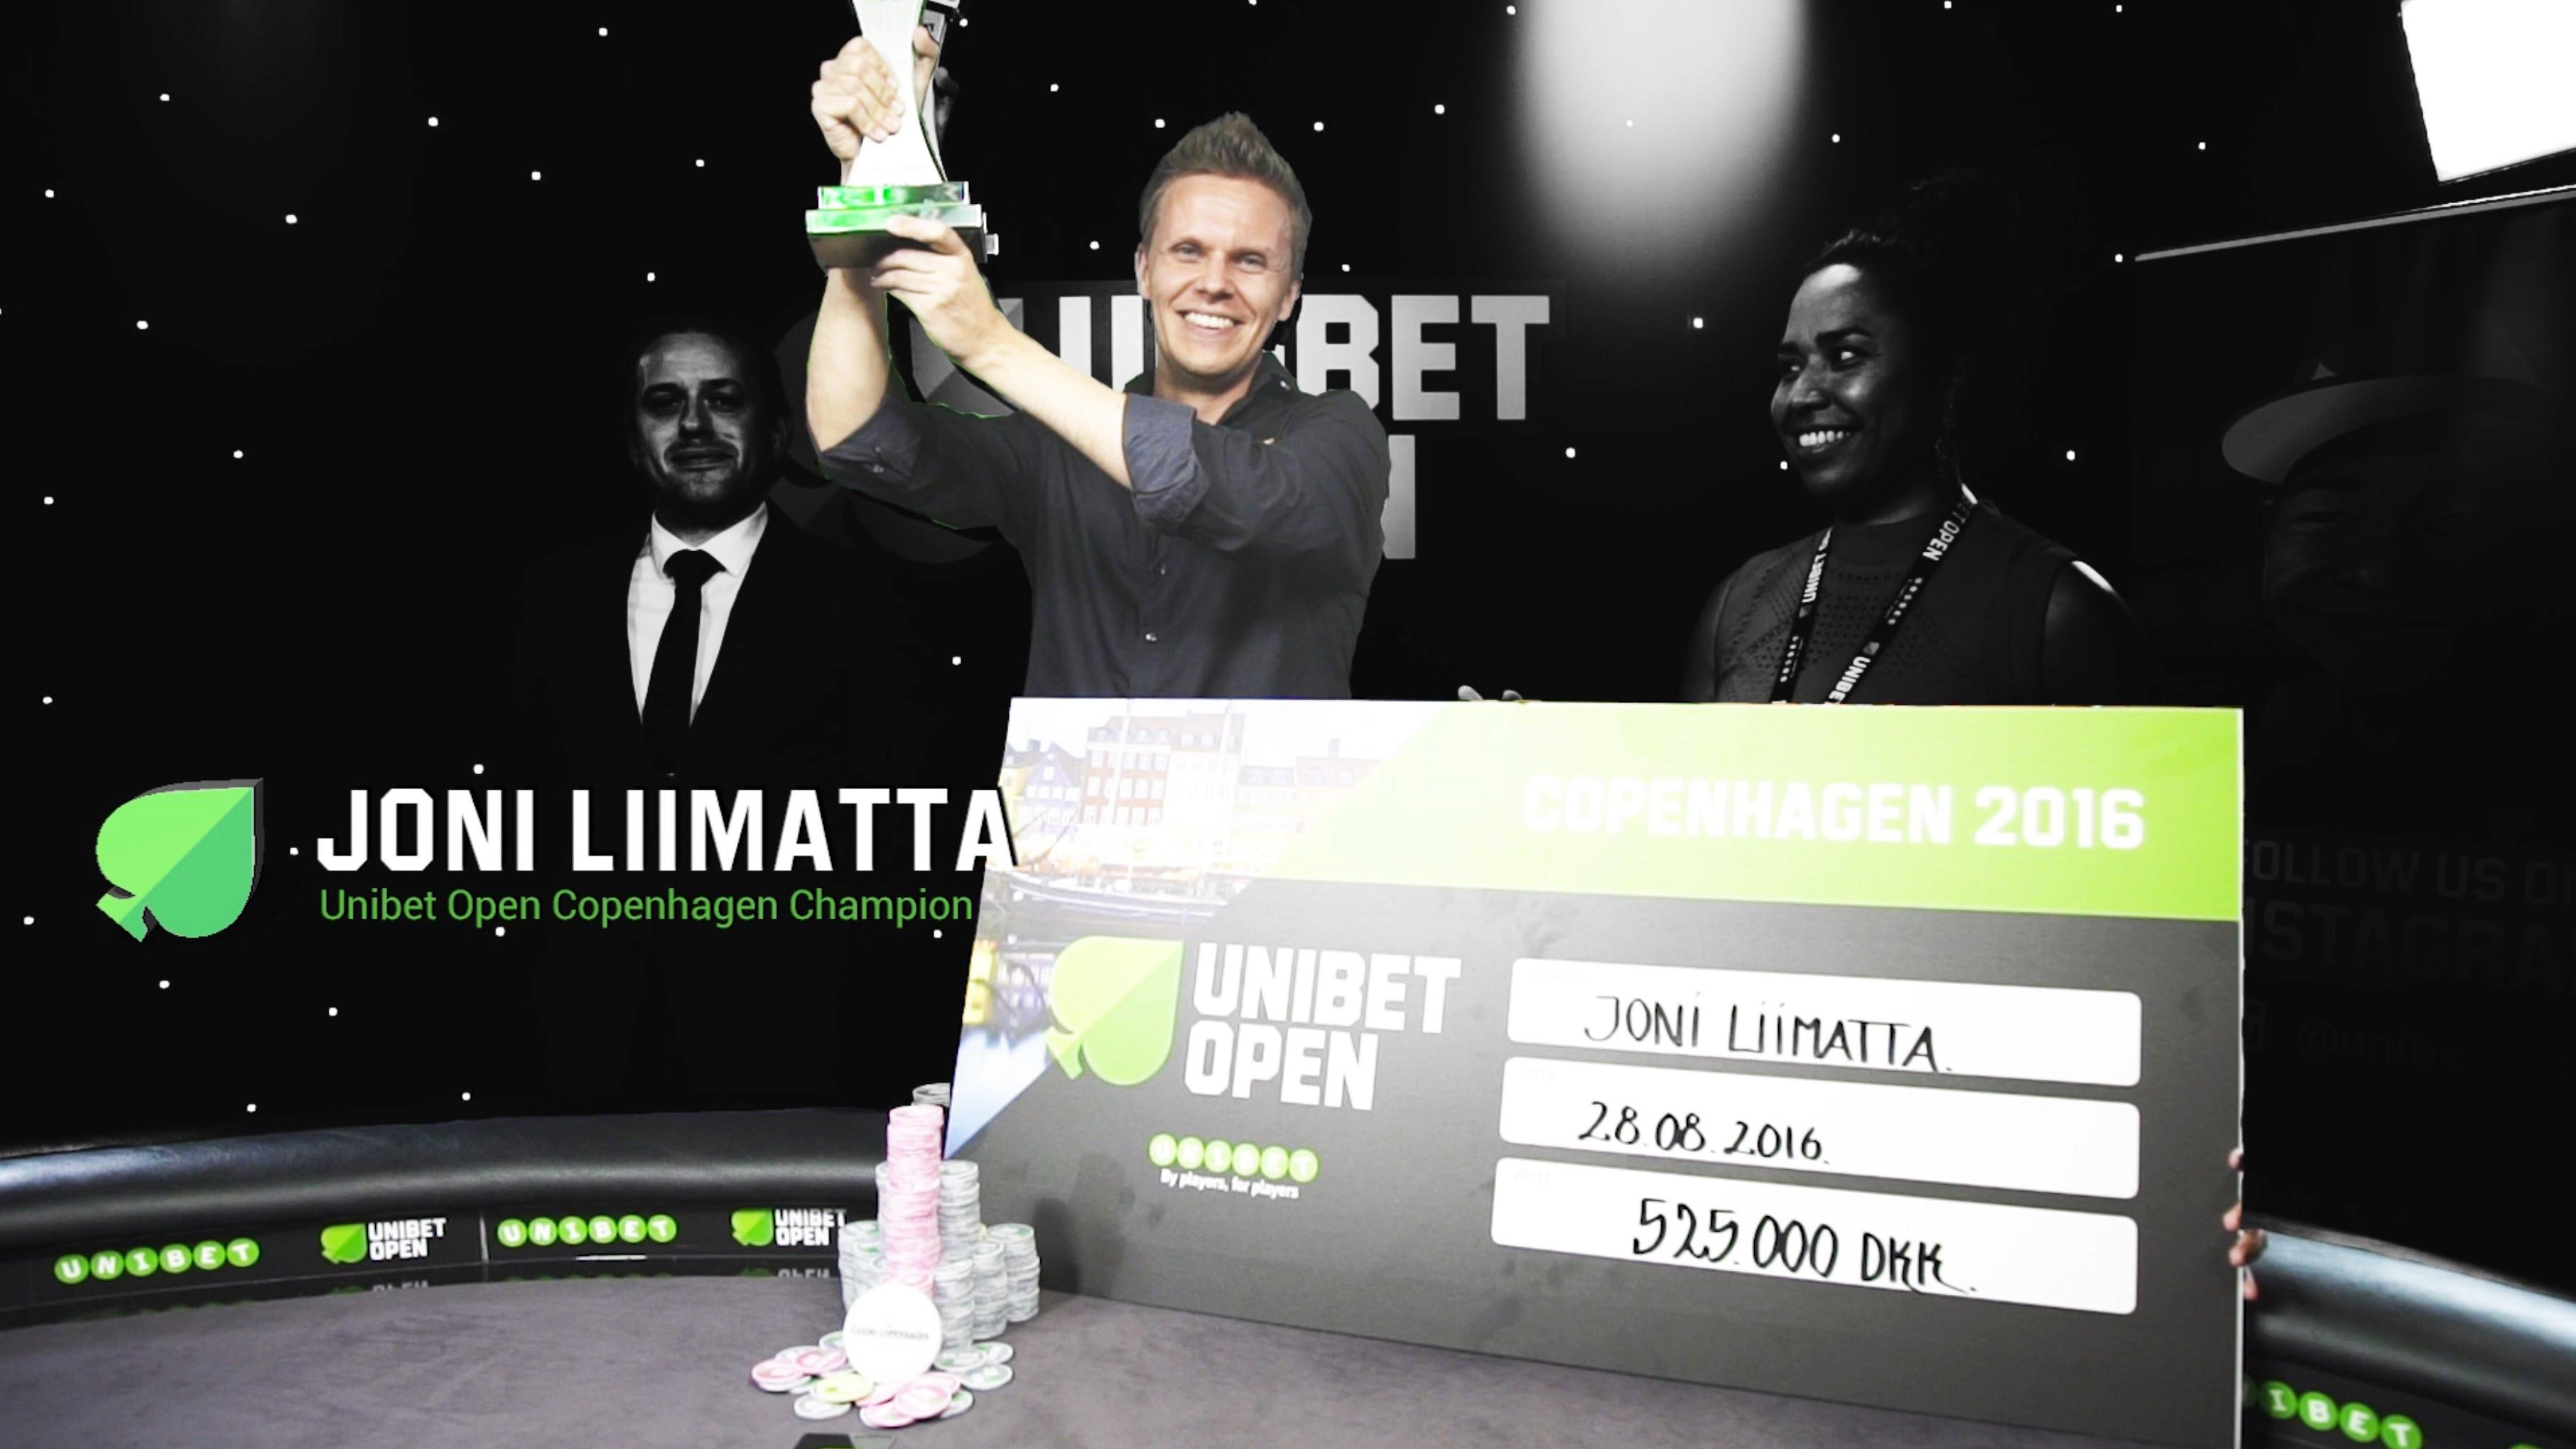 A Poker Champion's Journey on the Unibet Open